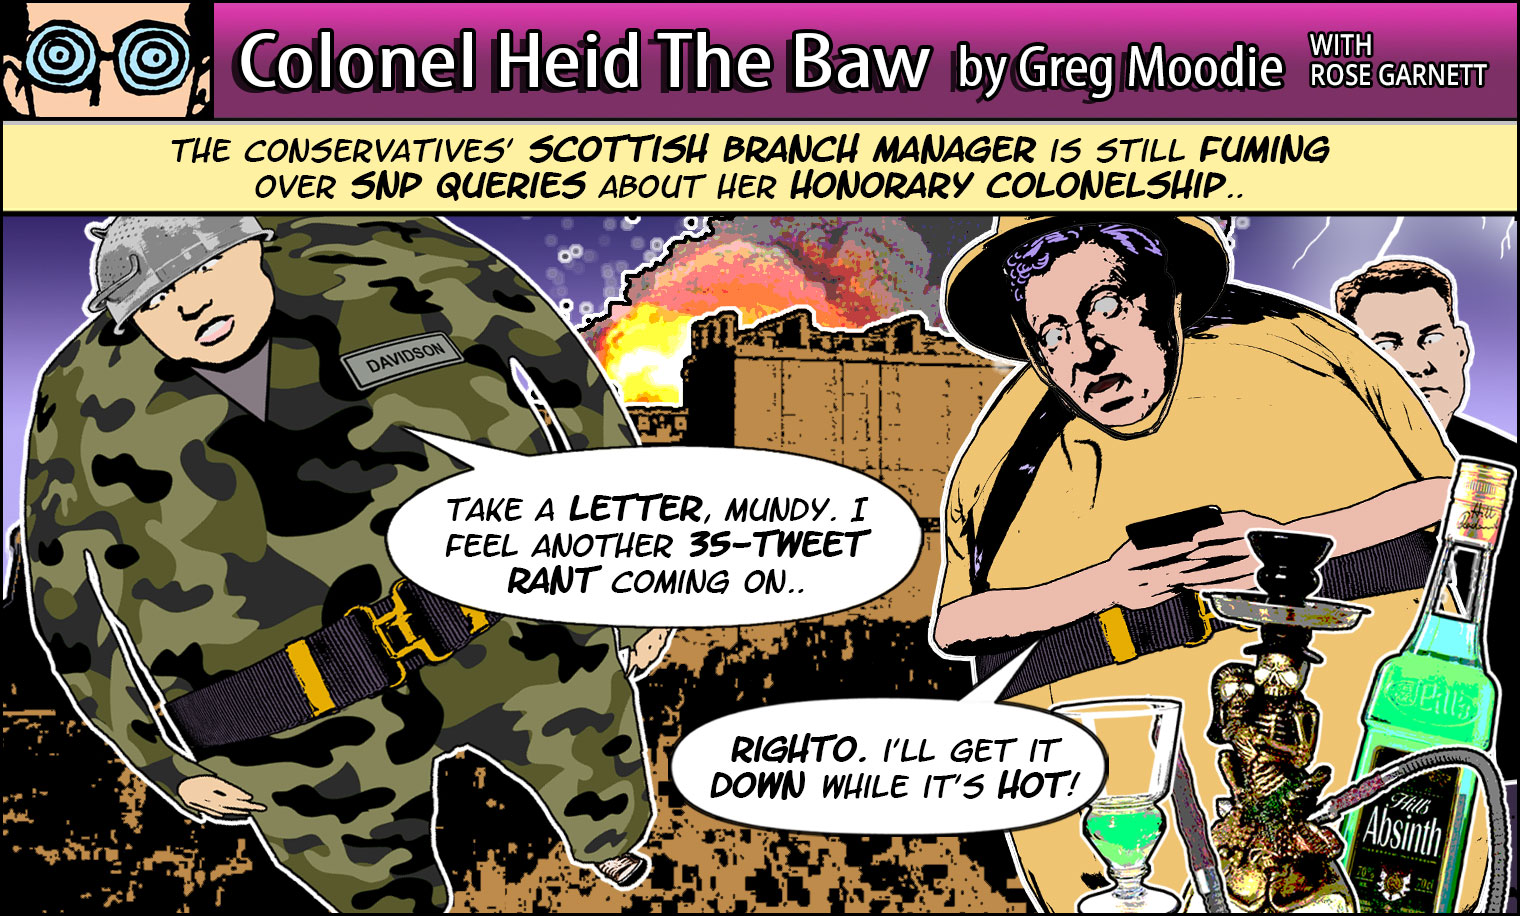 Colonel Heid The Baw